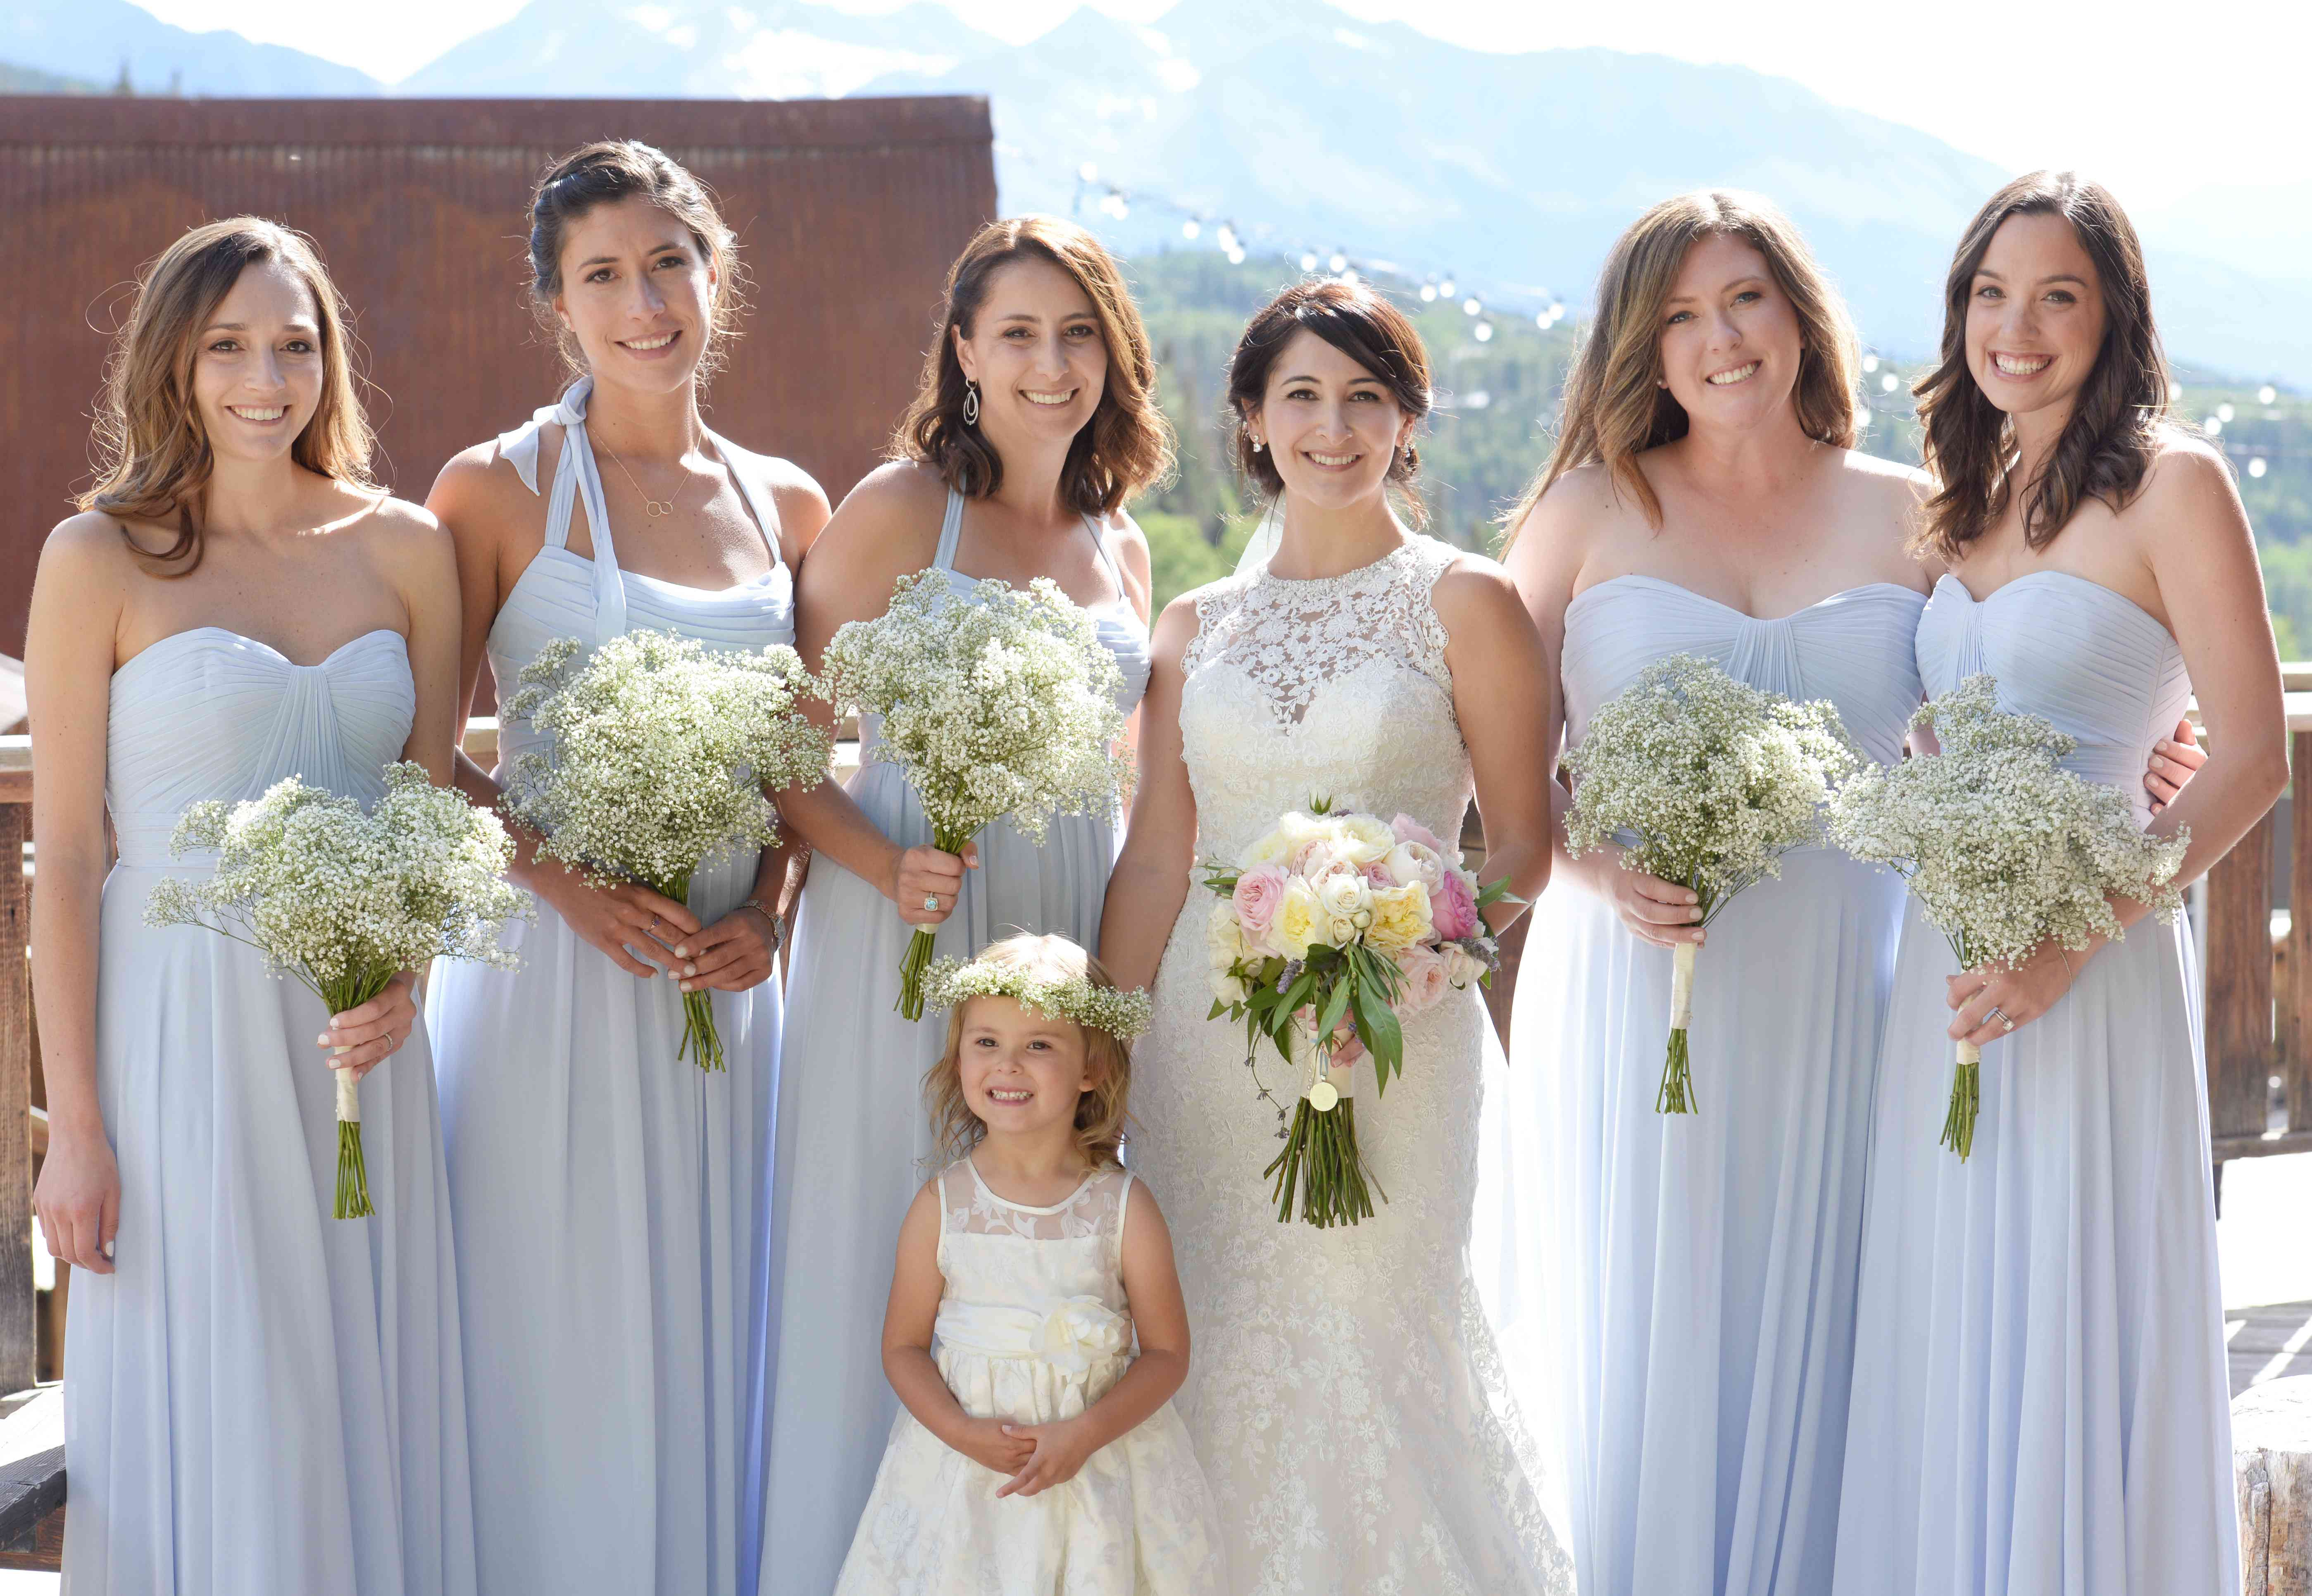 how many bridesmaids is too many